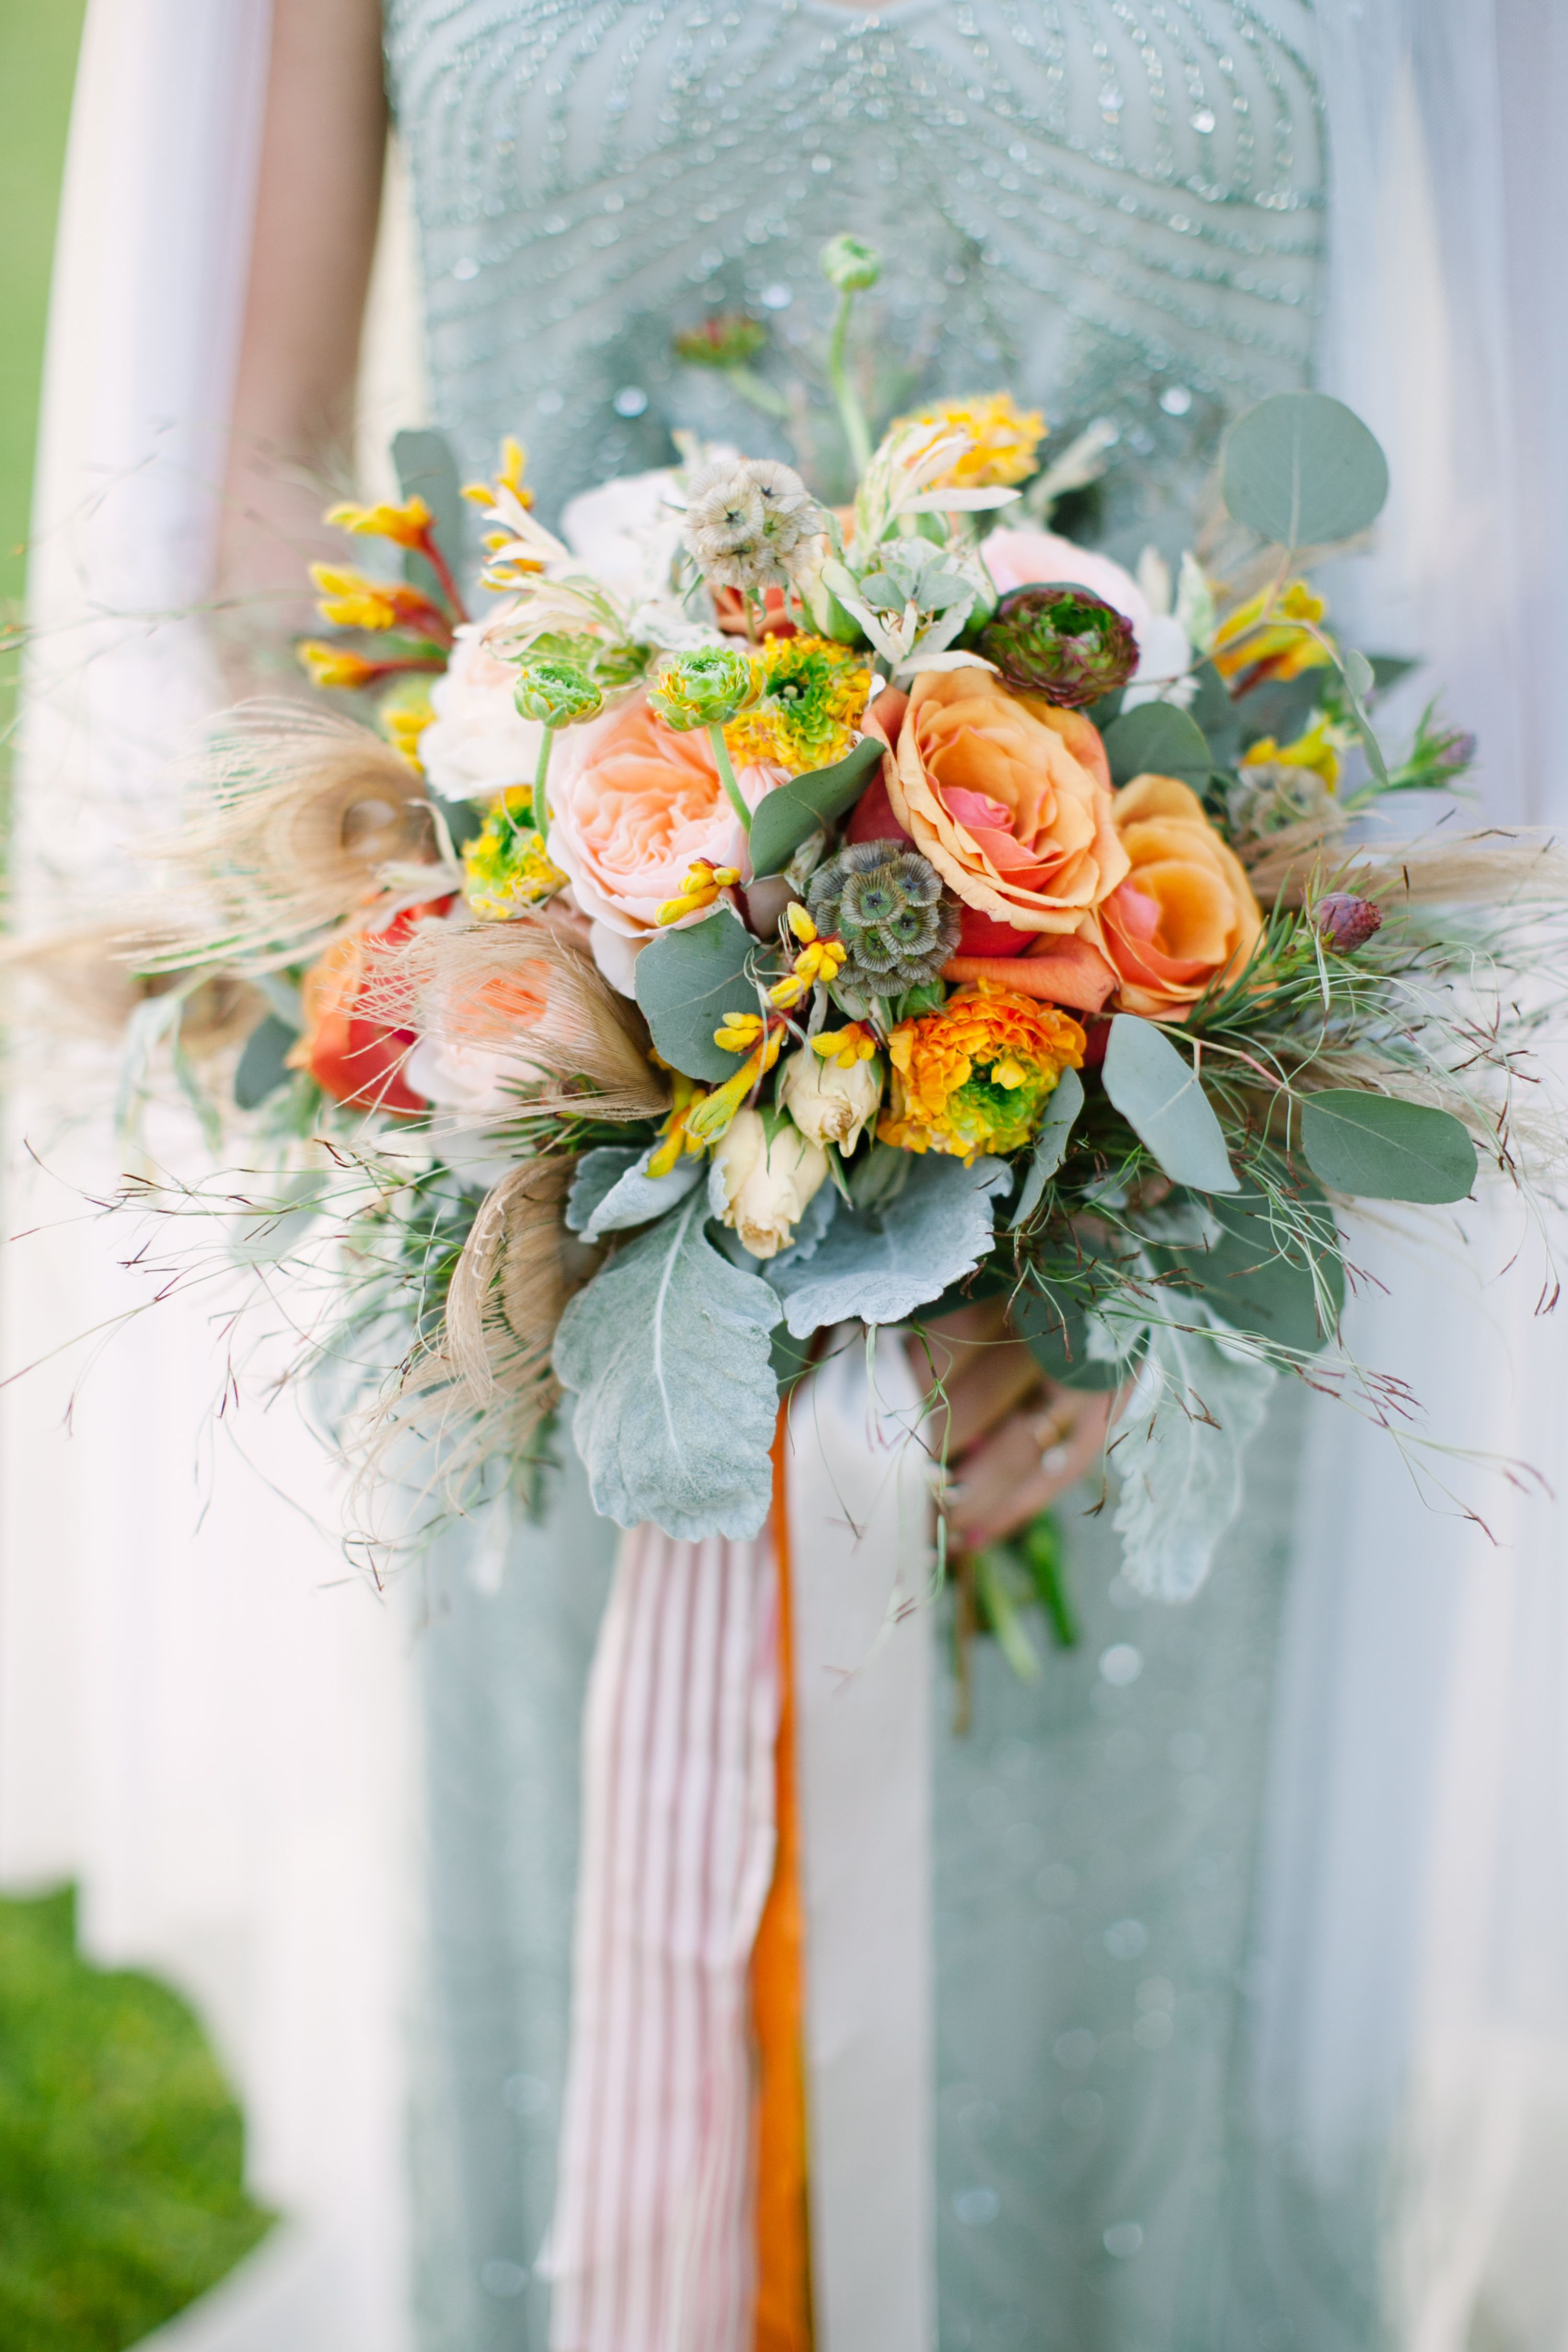 Stunning Bouquet With Pops Of Peach By Jessica Wonders Events Photo Electric Lime Photography